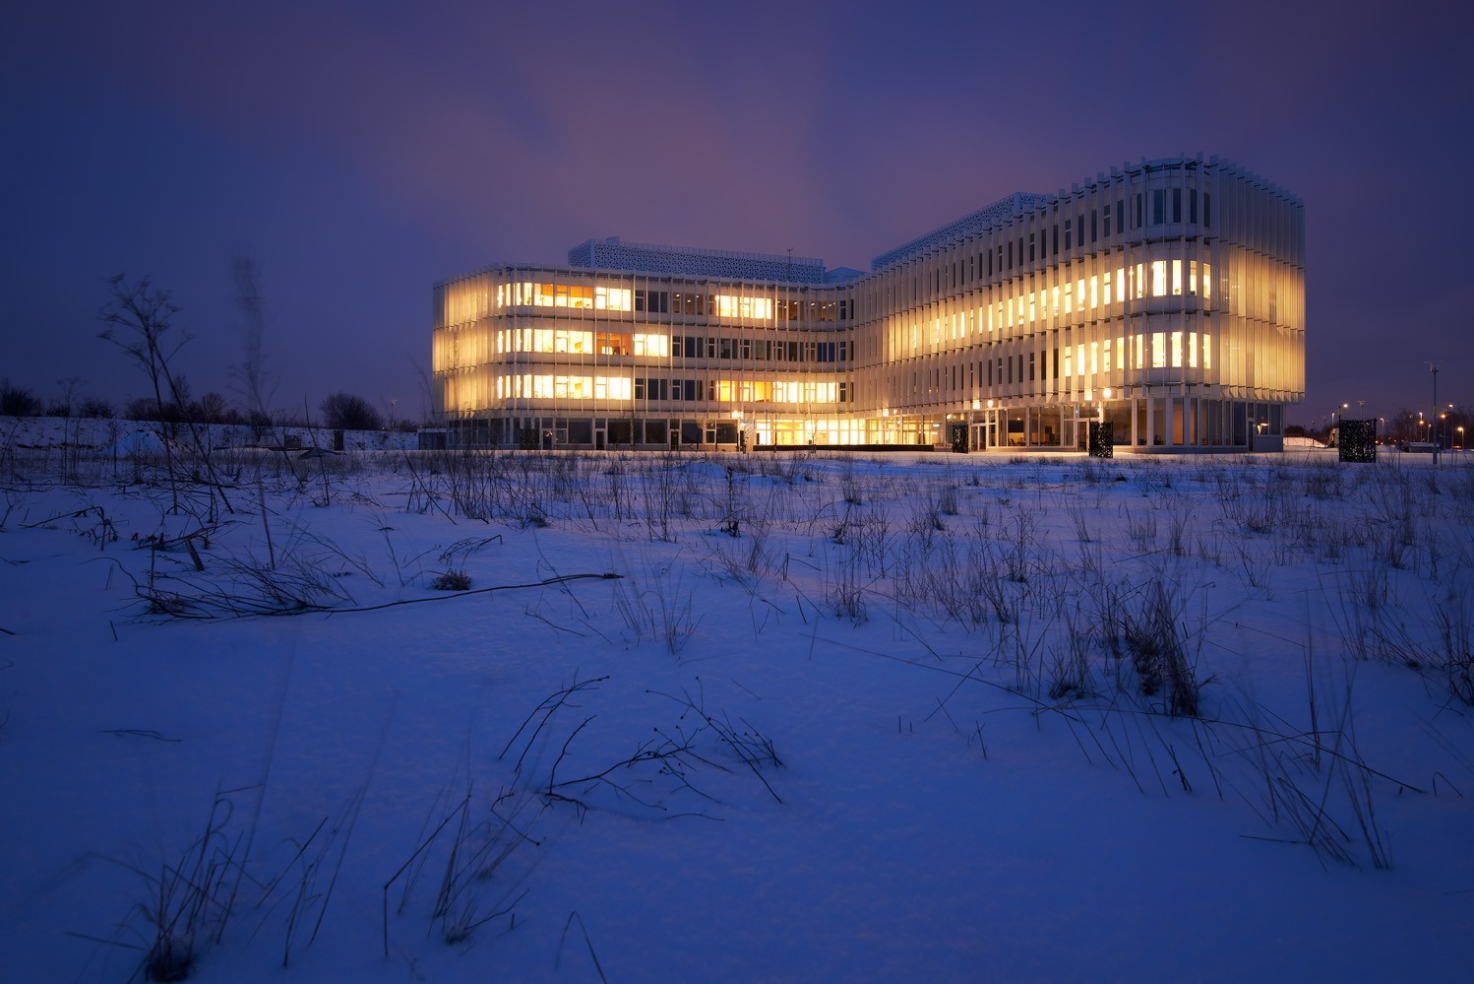 Danske Handicaporganisationers Hus Gottlieb Paludan, CUBO, Force4. Foto: Force4 Architects